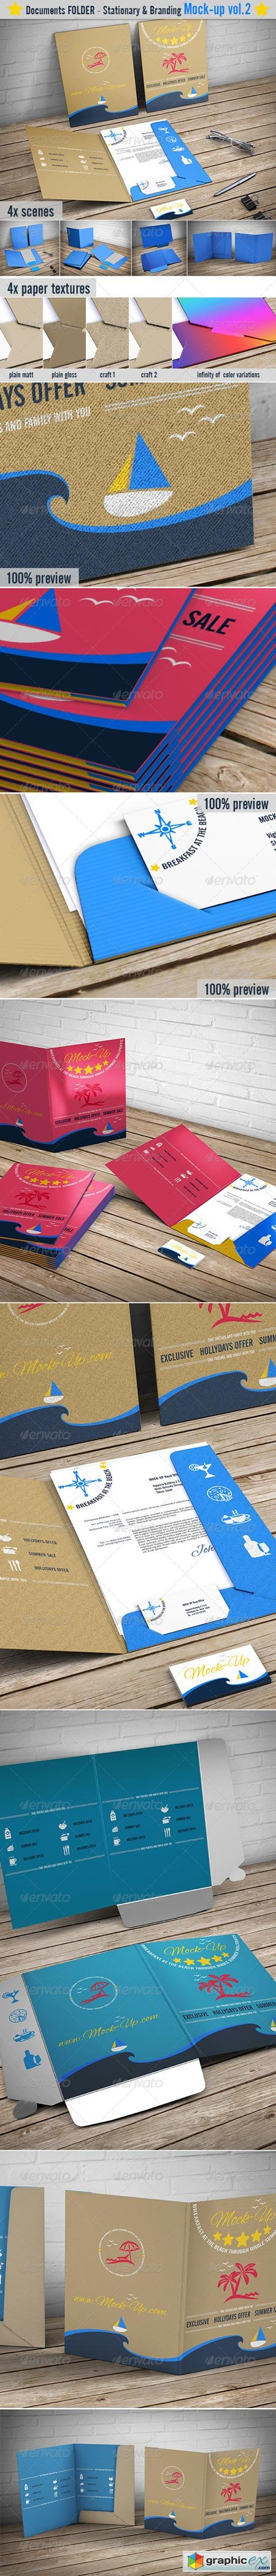 File Folder Mockup Document Folder Mock-Up 7763802